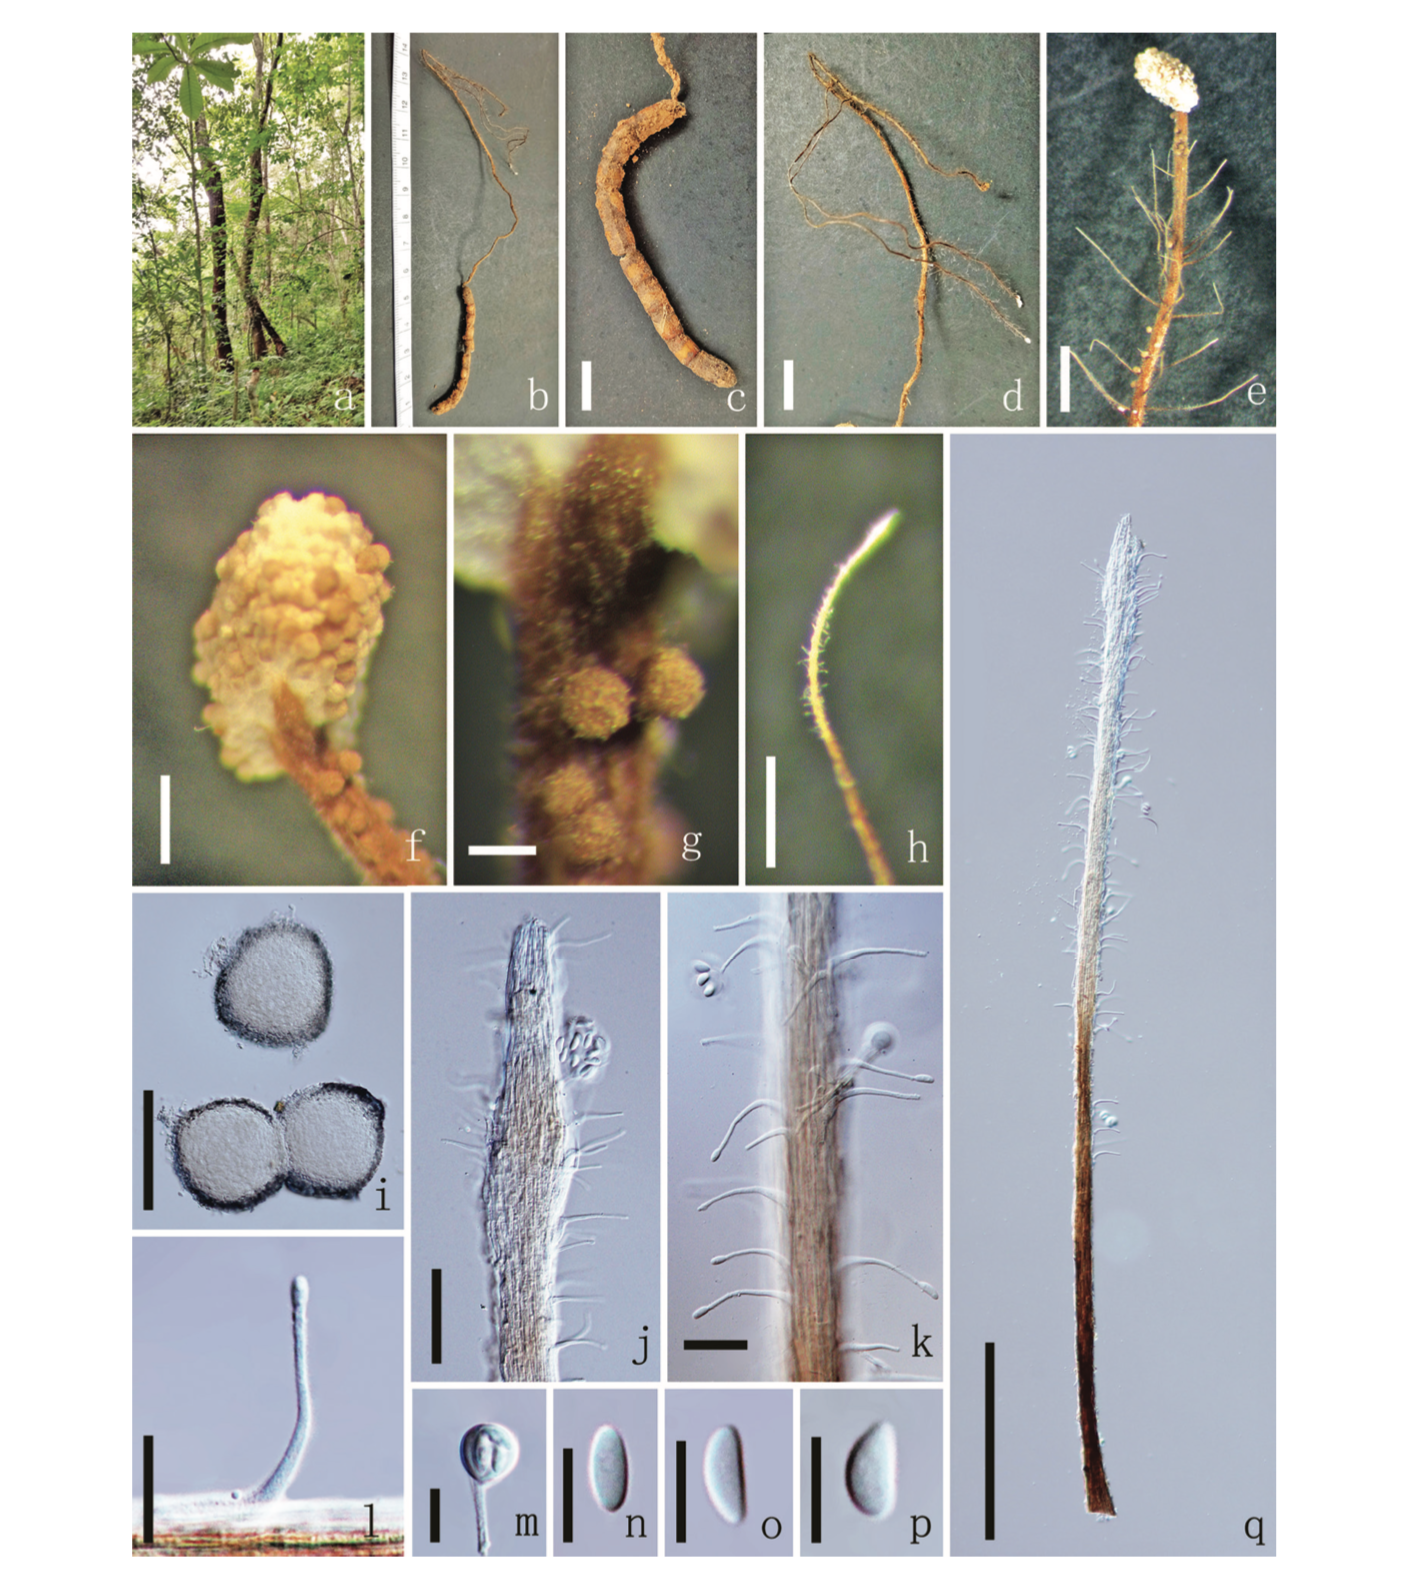 Ophiocordyceps sporangifera   a  Habitat  b  Synnemata on host surface  c  Host  d, e Synnemata  f  Fertile head of primary synnema  g  Sporangium  h  Secondary synnema  i  Sporangium  j, k, q  Part of secondary synnema  l  Phialides  m  Conidia bound by deliquescing mucilaginous material  n–p  Conidia. Scale bars: 1 cm ( c, d ), 1000 µm ( e ), 200 µm ( f, h, q ), 100 µm ( g, i ), 50 µm ( j ), 20 µm ( k, l ), 10 µm ( m–p ).  From Xiao et al. 2019 .